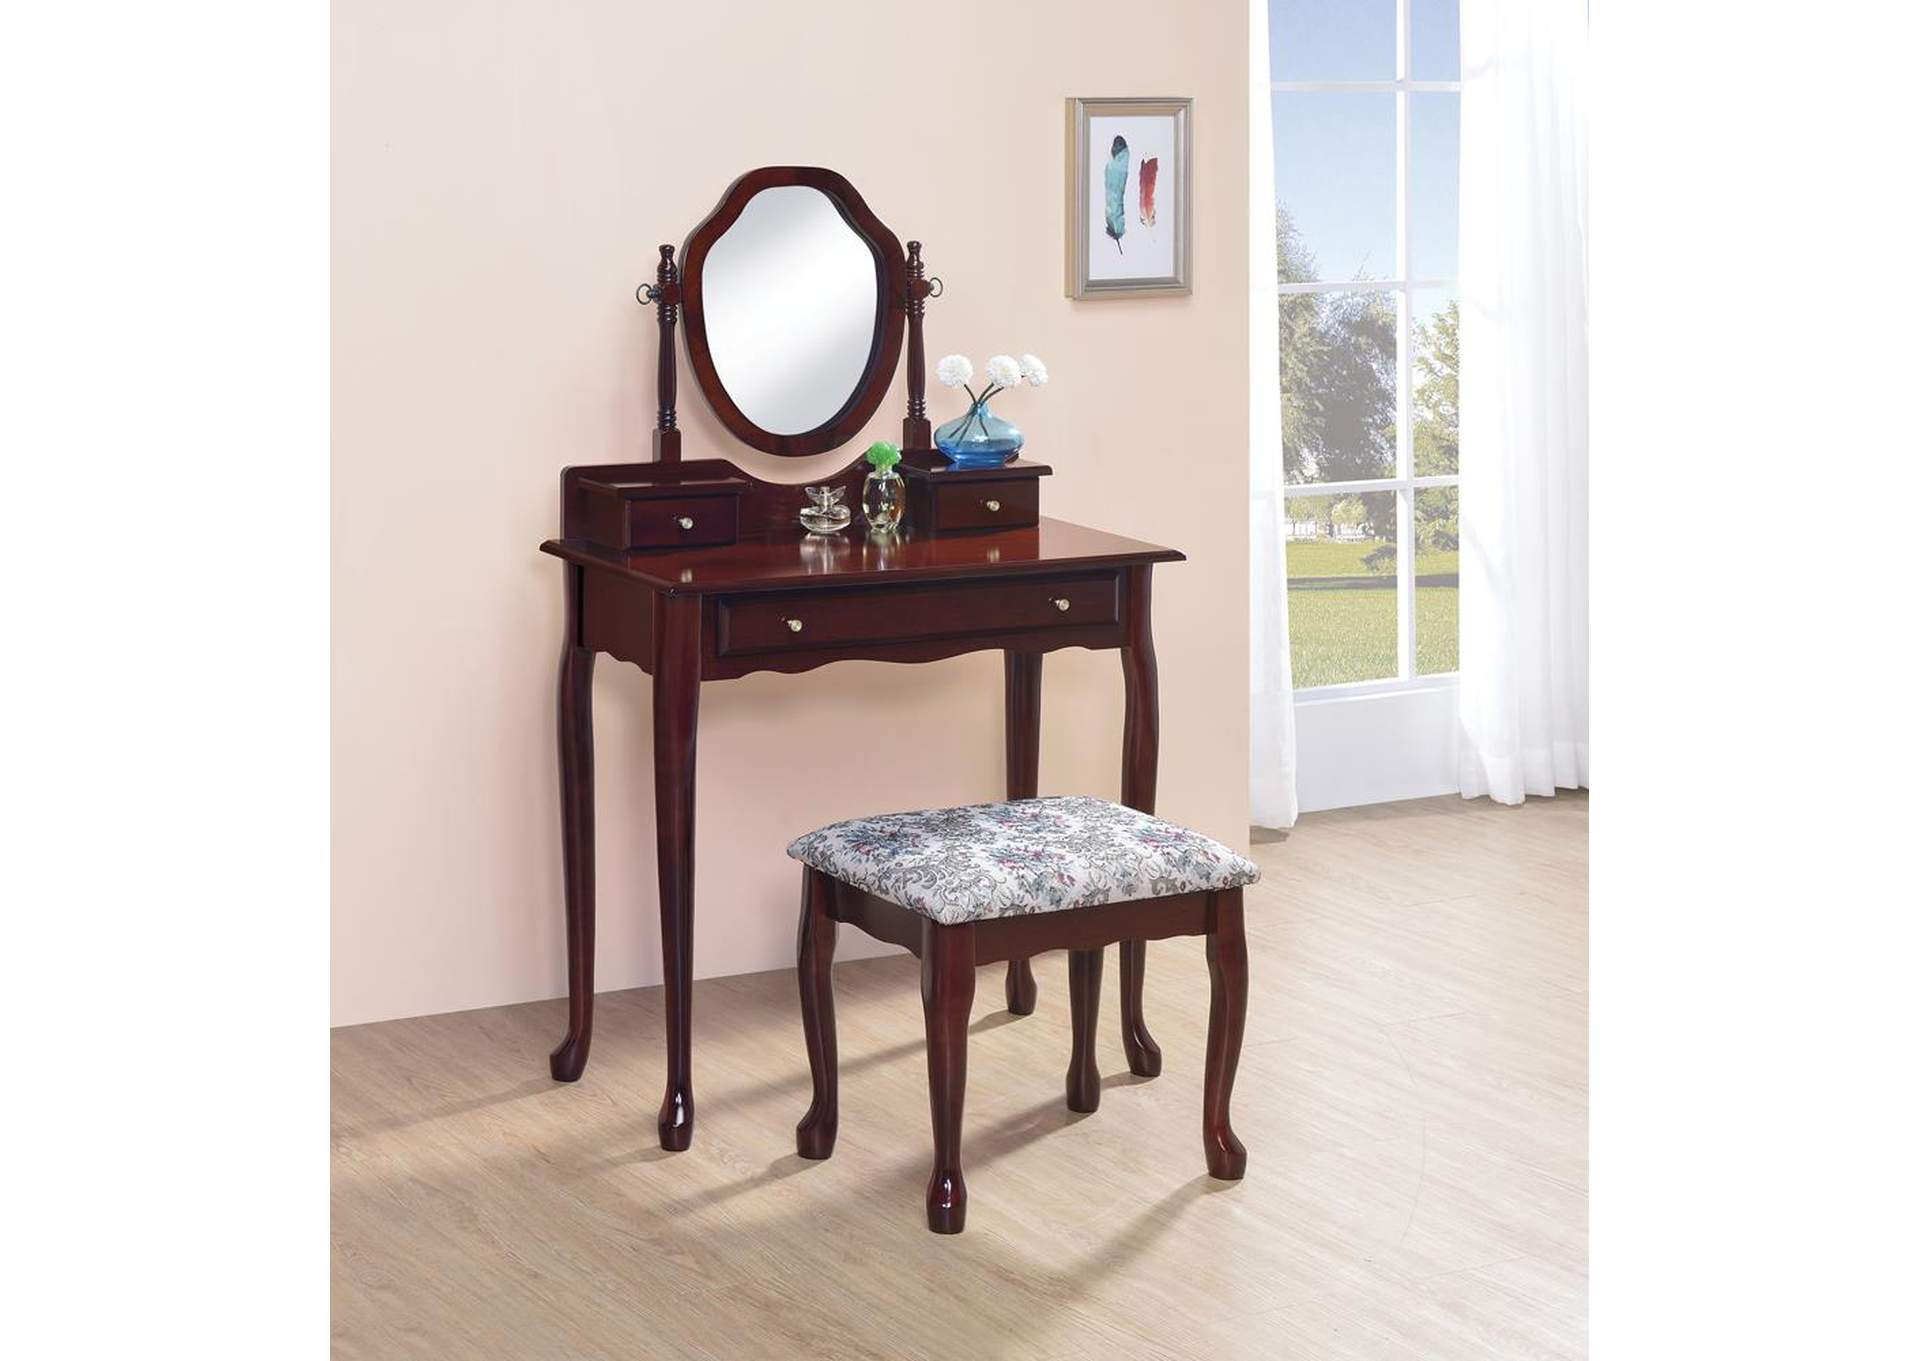 Vanity & Stool Set,ABF Coaster Furniture